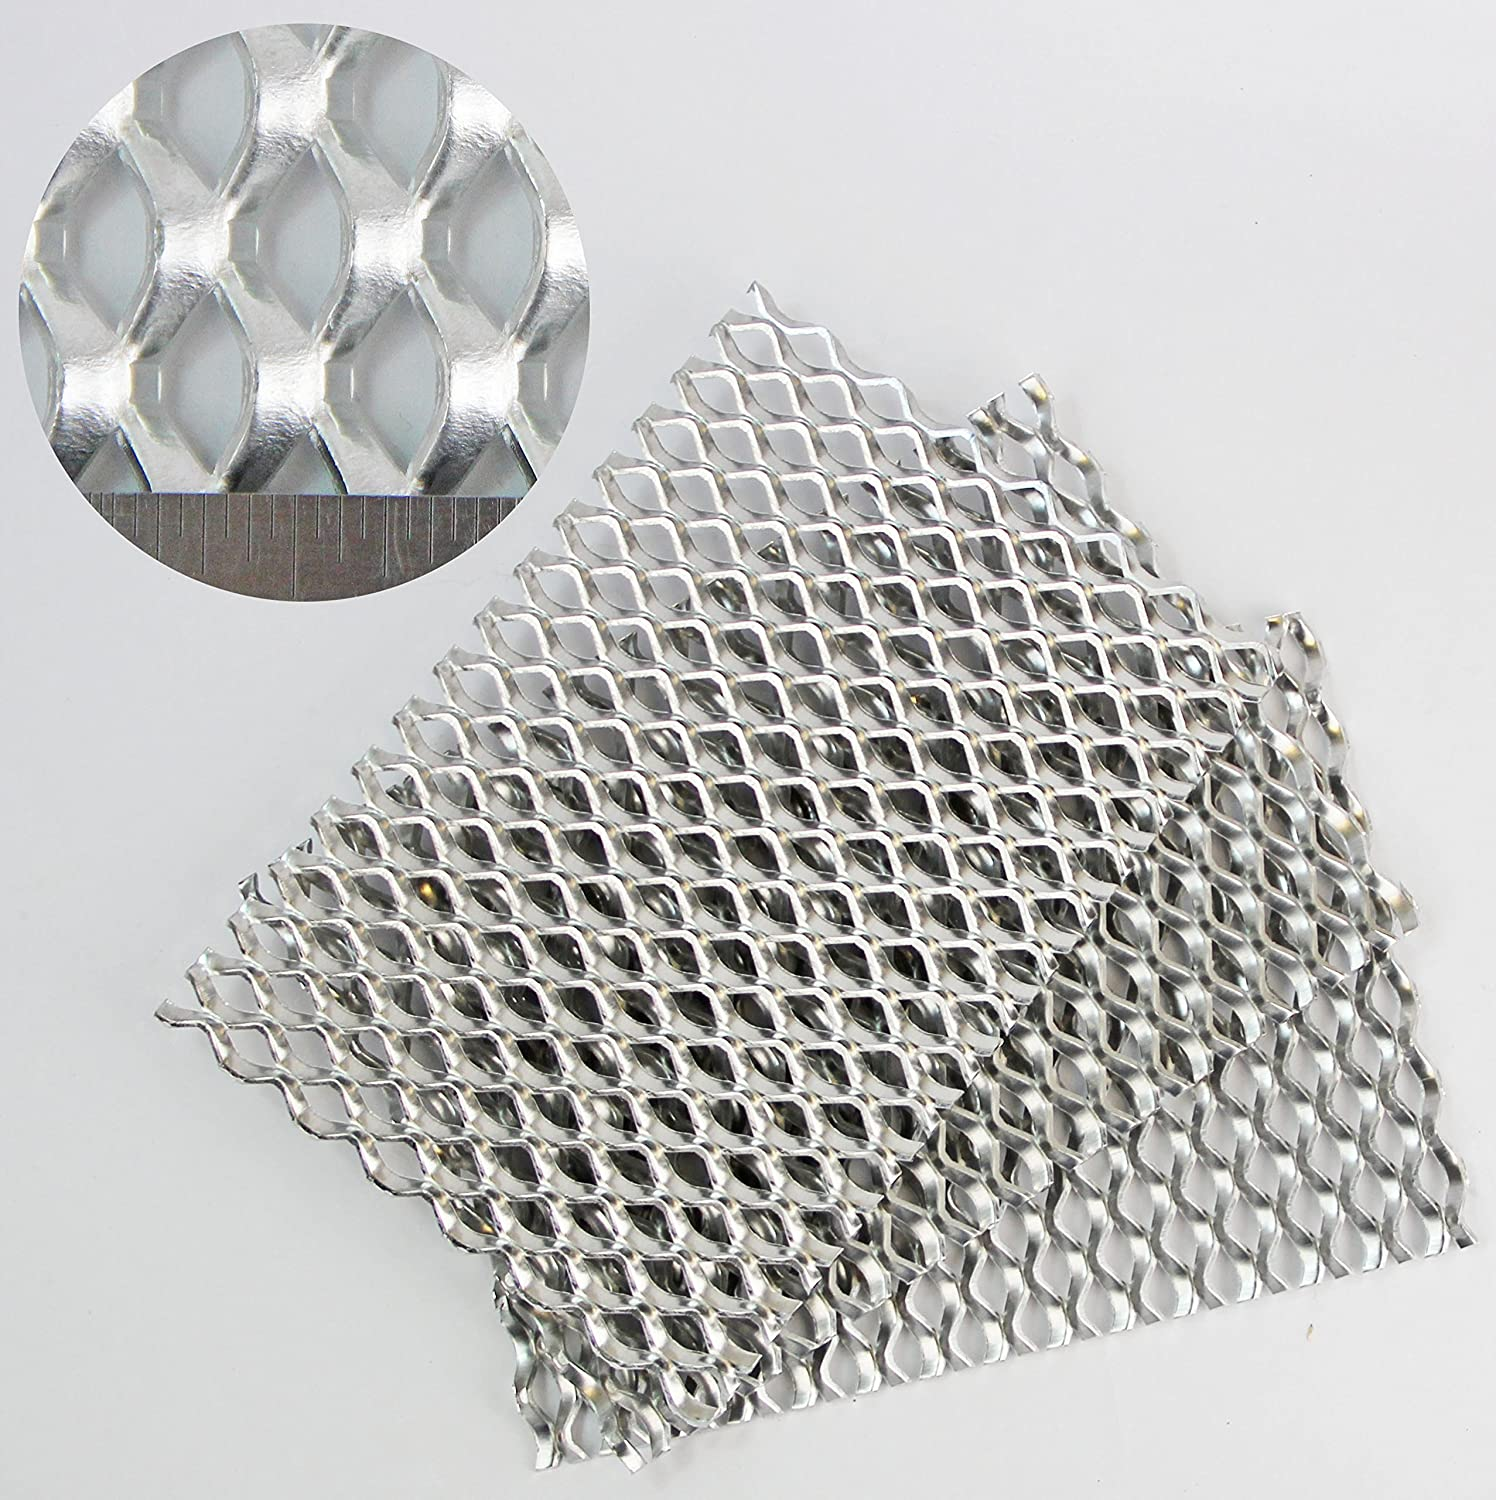 20mm x 14mm Expanded Metal - Aluminium - 3 PACK = A5 (150 x 210mm) x 3 The Mesh Company